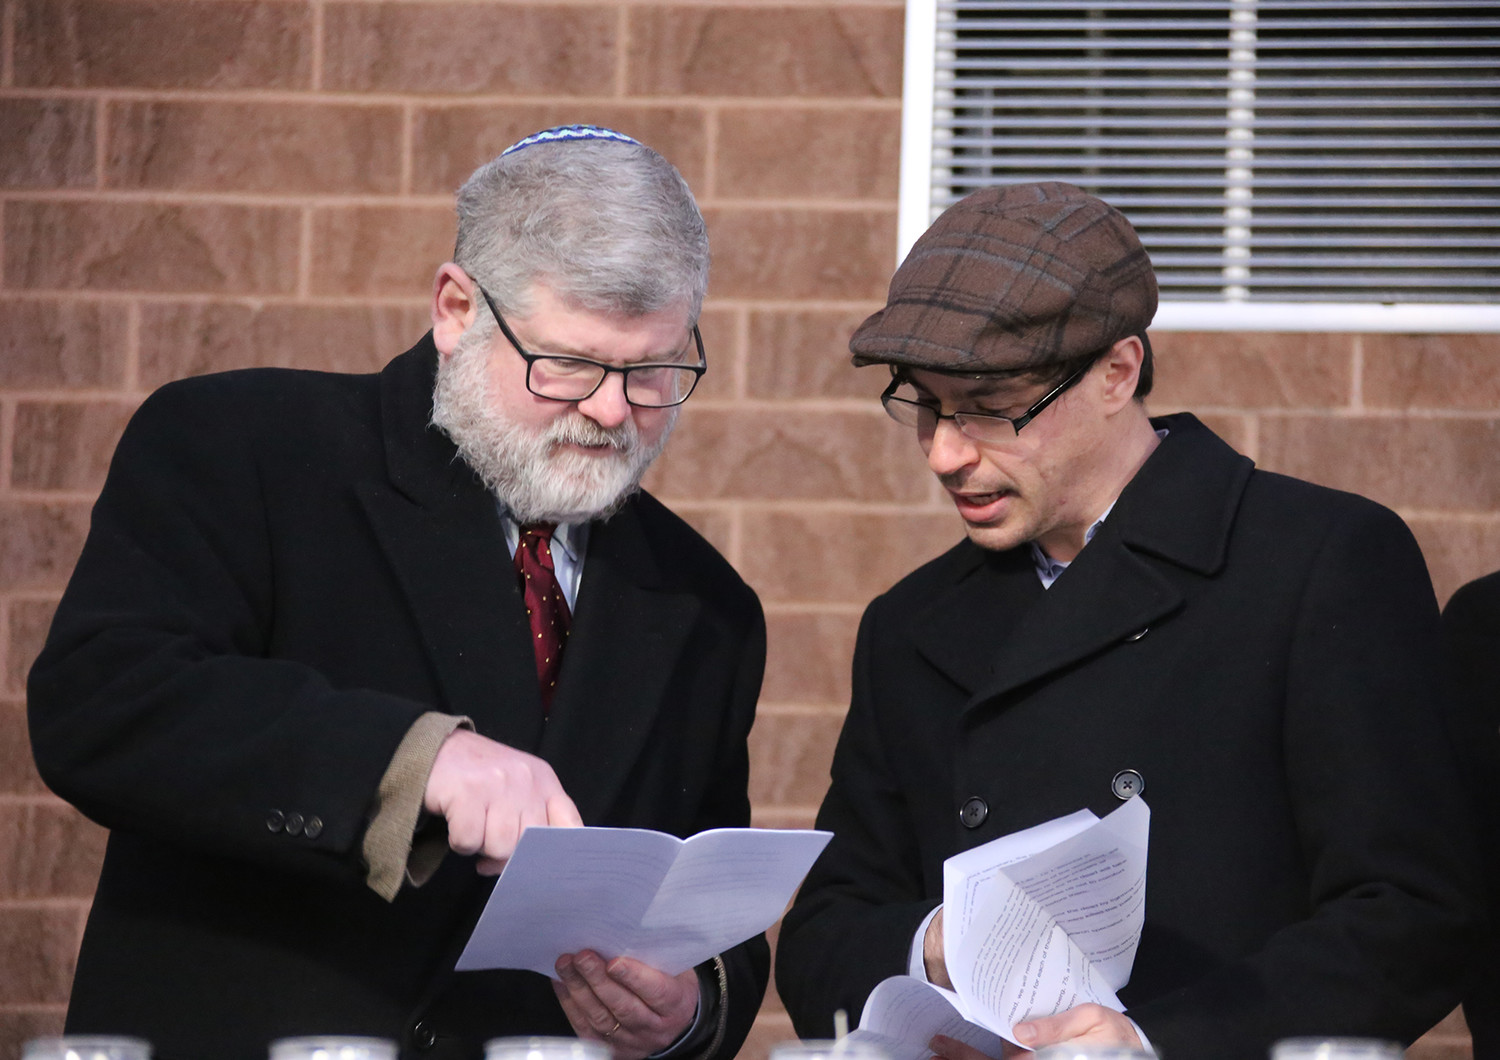 Rabbis Jeffrey Goldwasser and Barry Dolinger